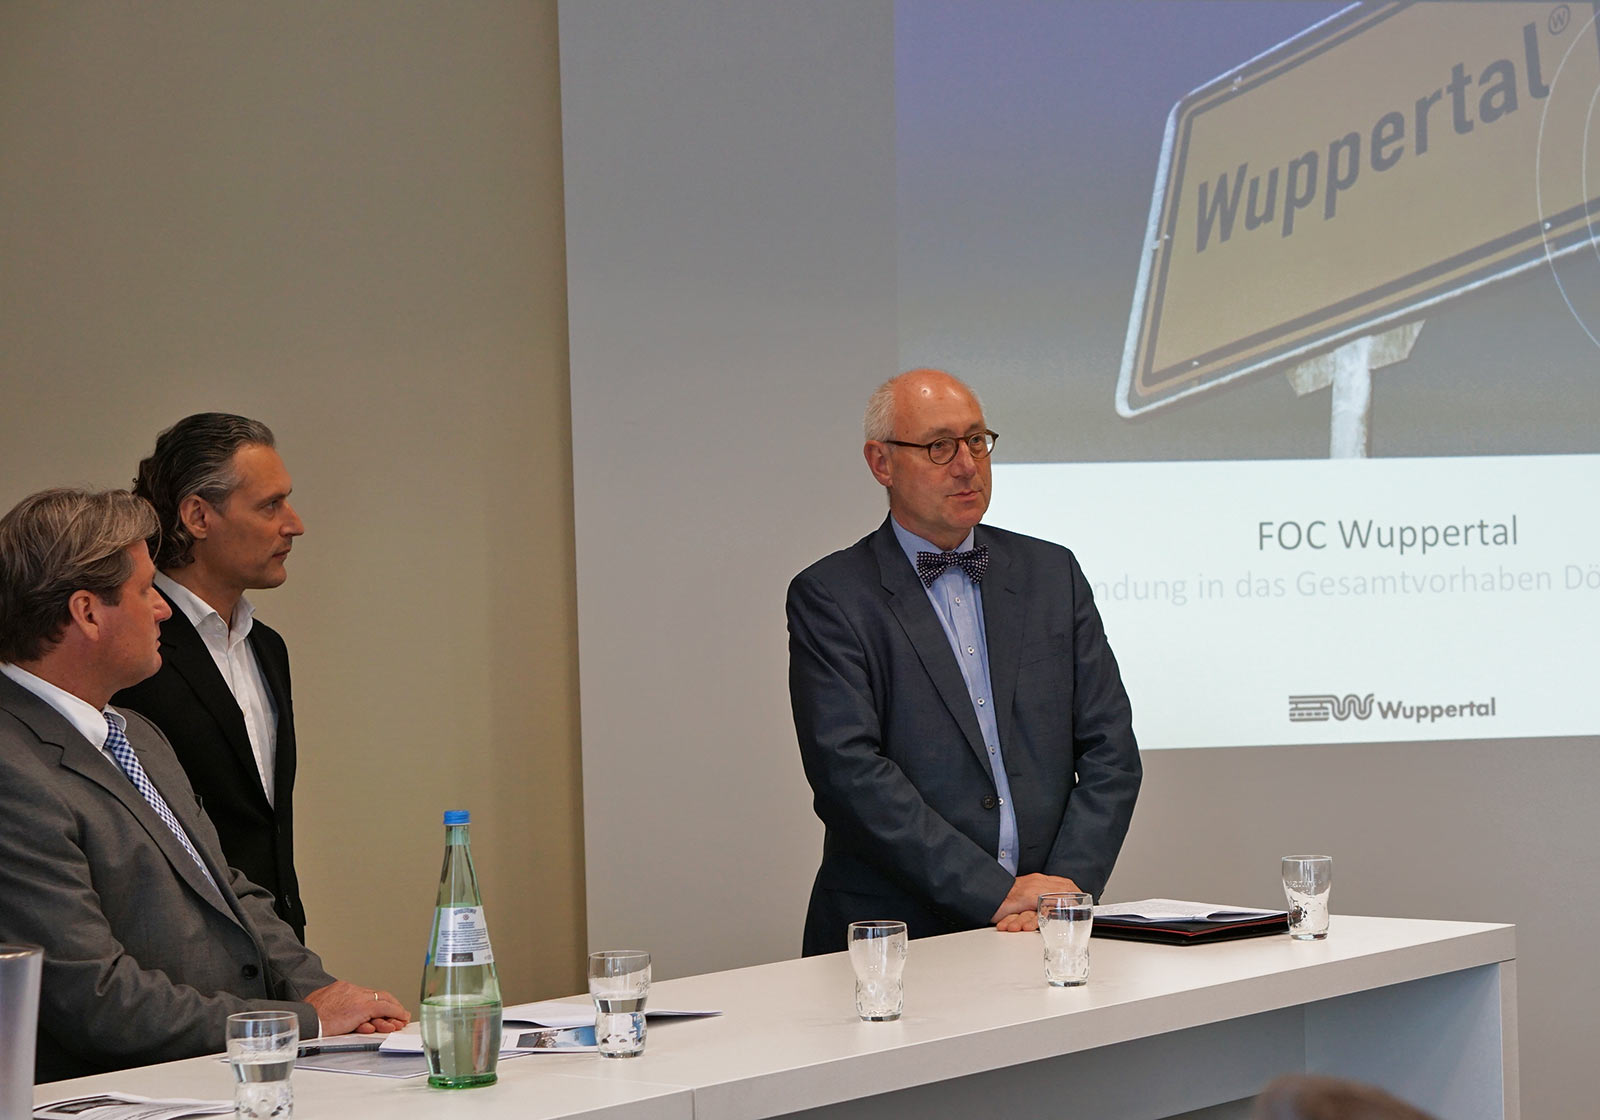 Thomas Reichenauer, Managing Director, ROS Outlet Shopping GmbH, Klaus Schmidt, ATP Frankfurt, and Dr. Johannes Slawig, City Director of Wuppertal, answer the numerous questions from journalists. Photo: Clees Group of Companies